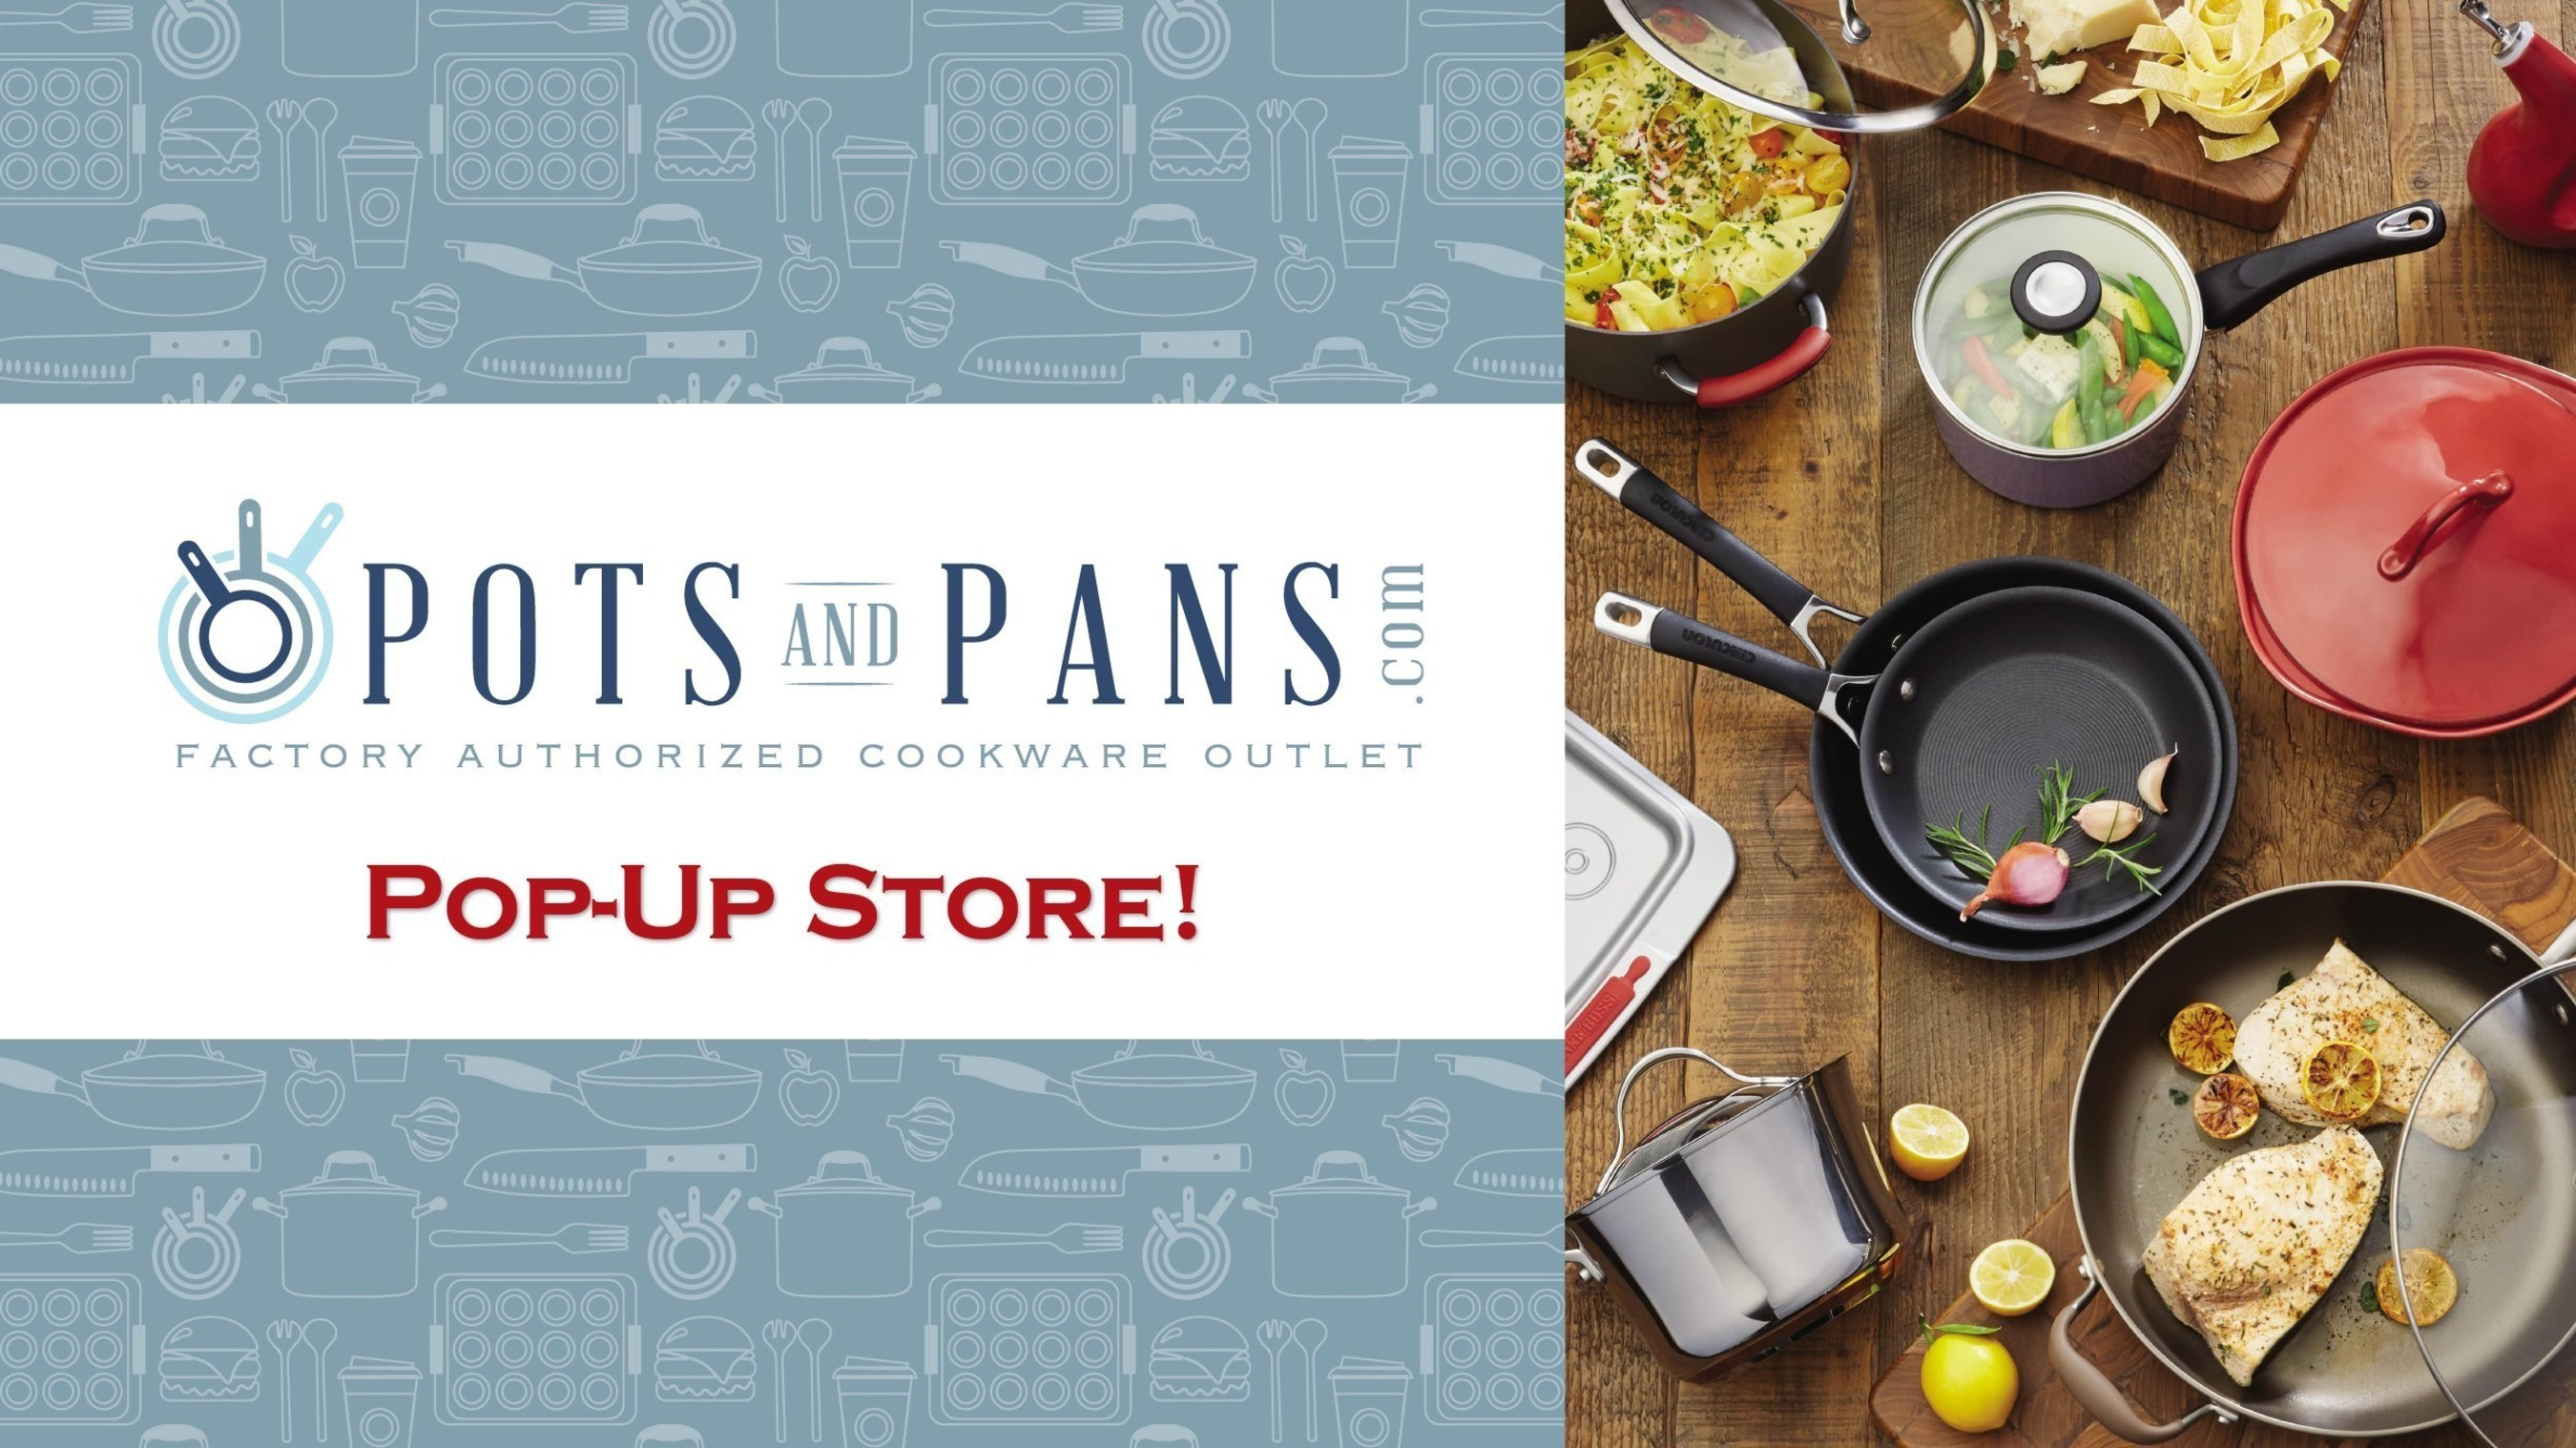 PotsandPans.com Opens Pop Up Store In California's Bay Area